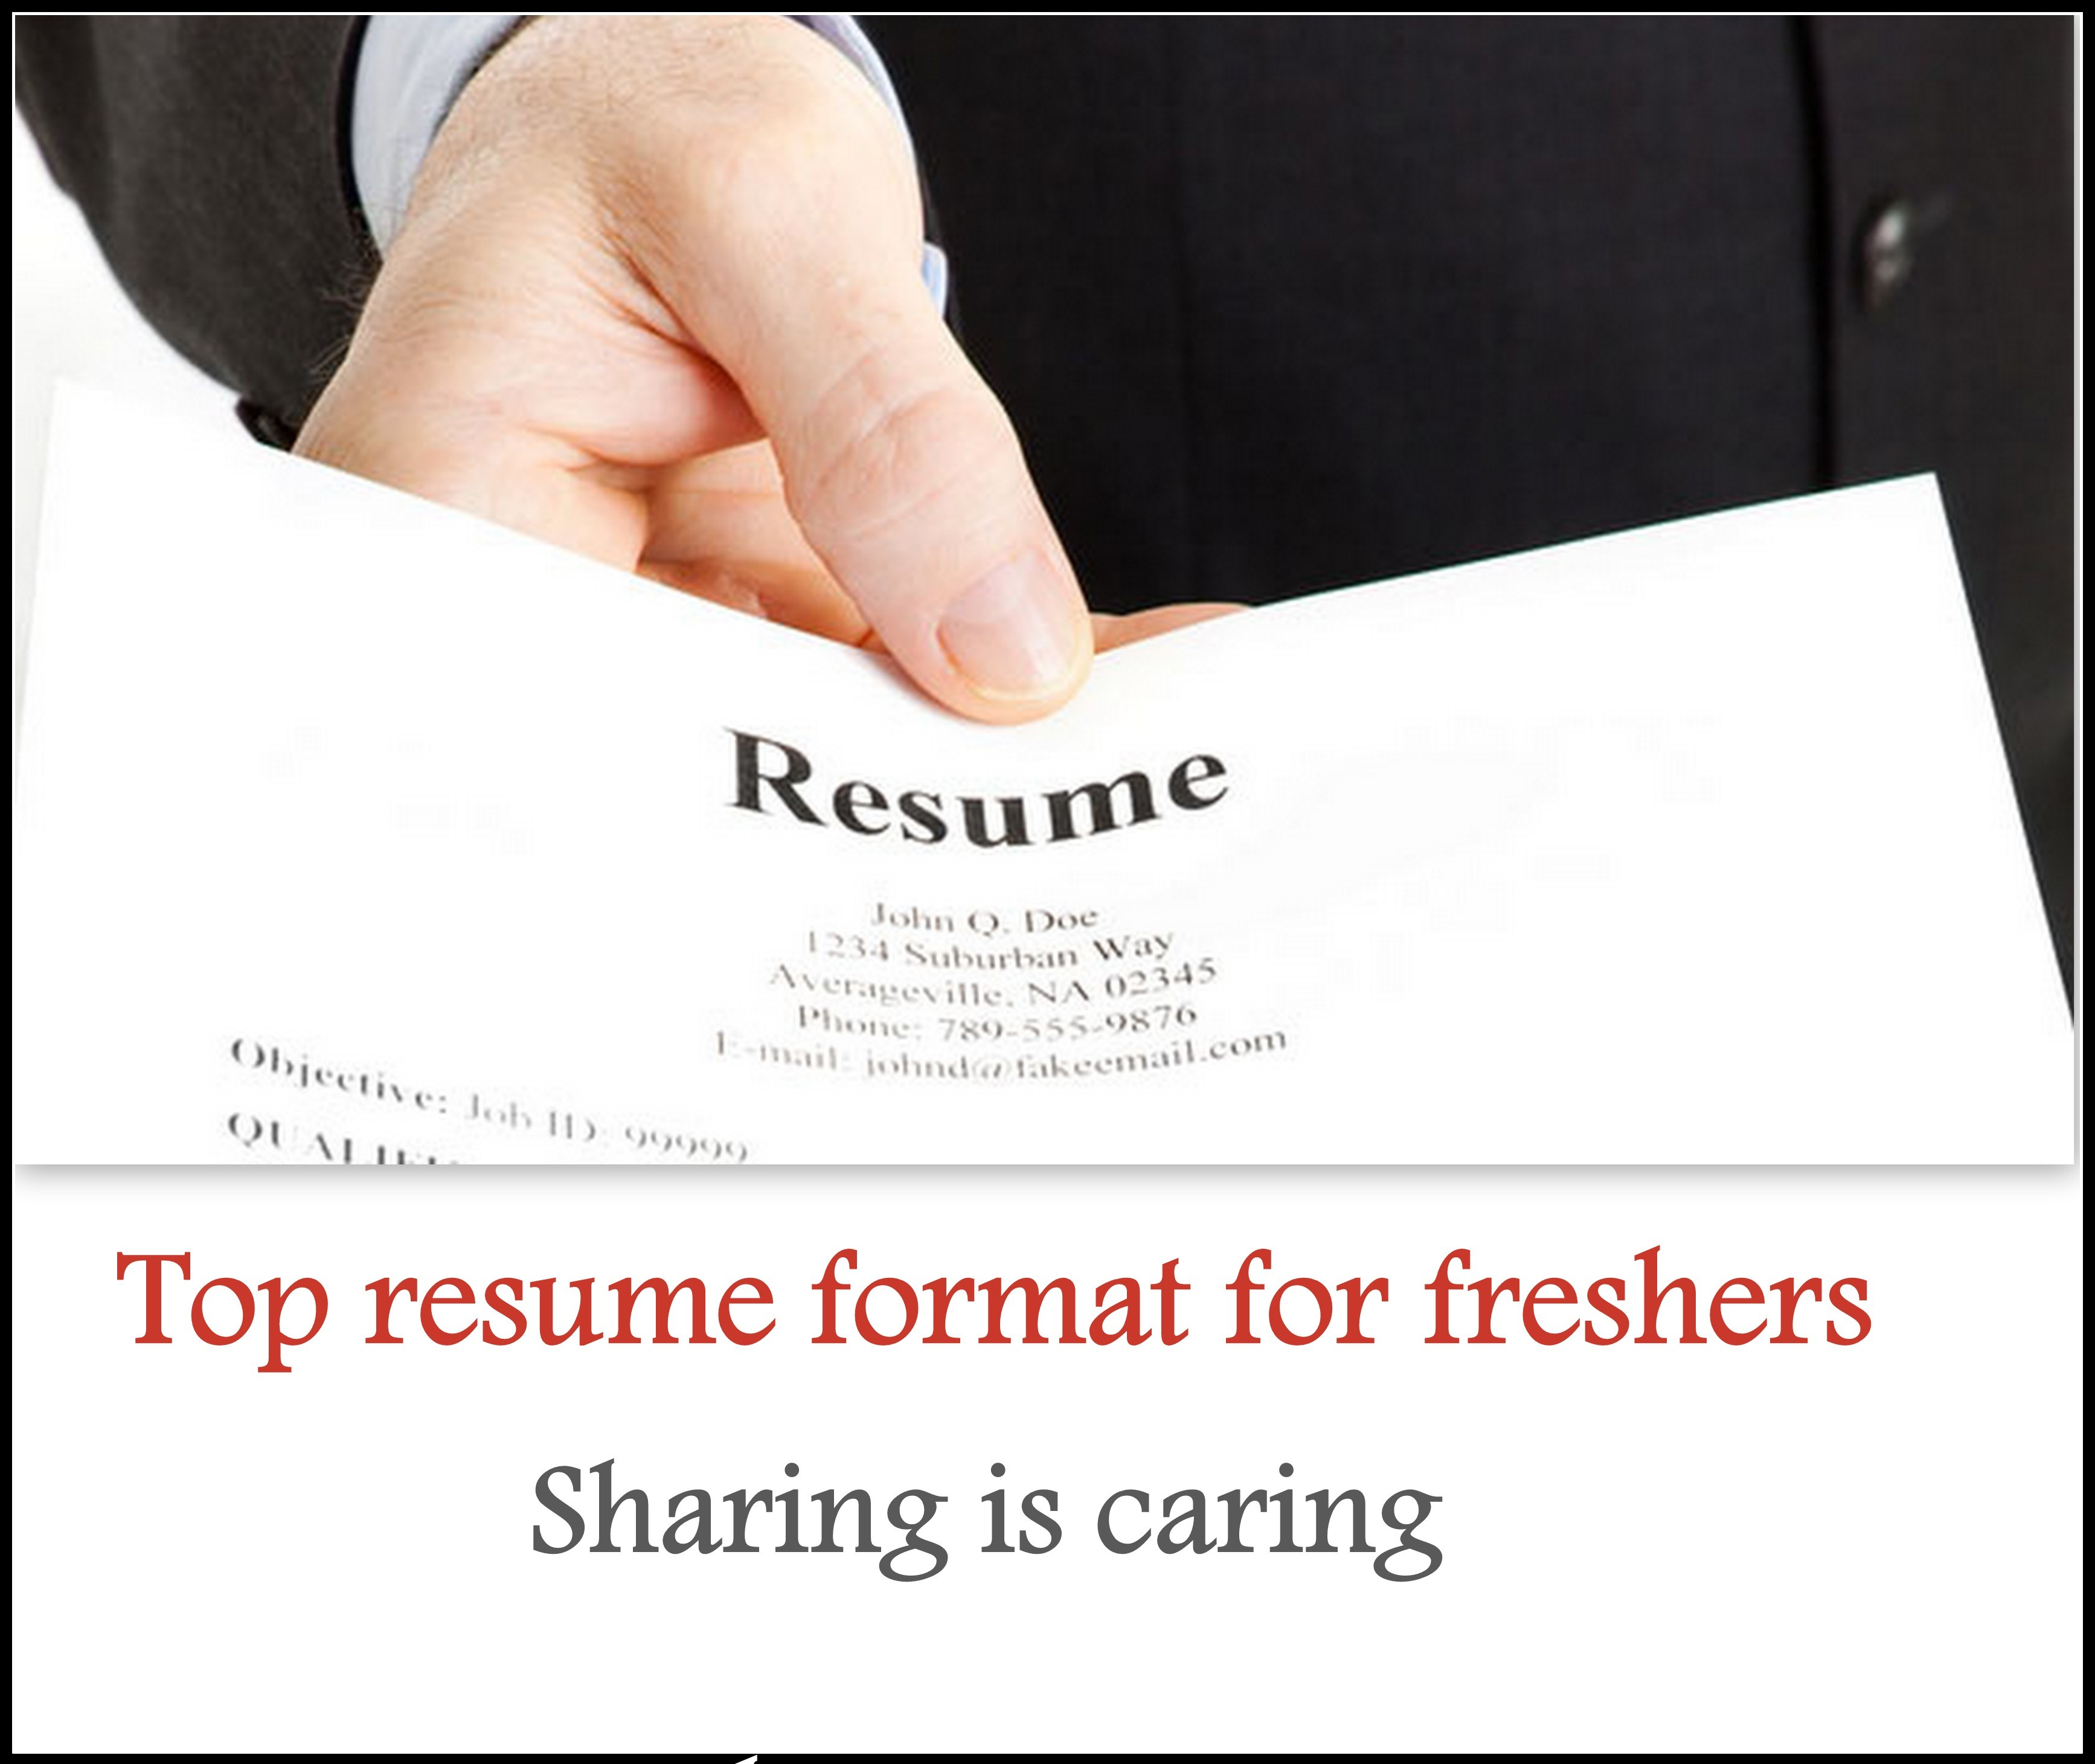 Top 5 Resume Format For Freshers Free Download Freshers360